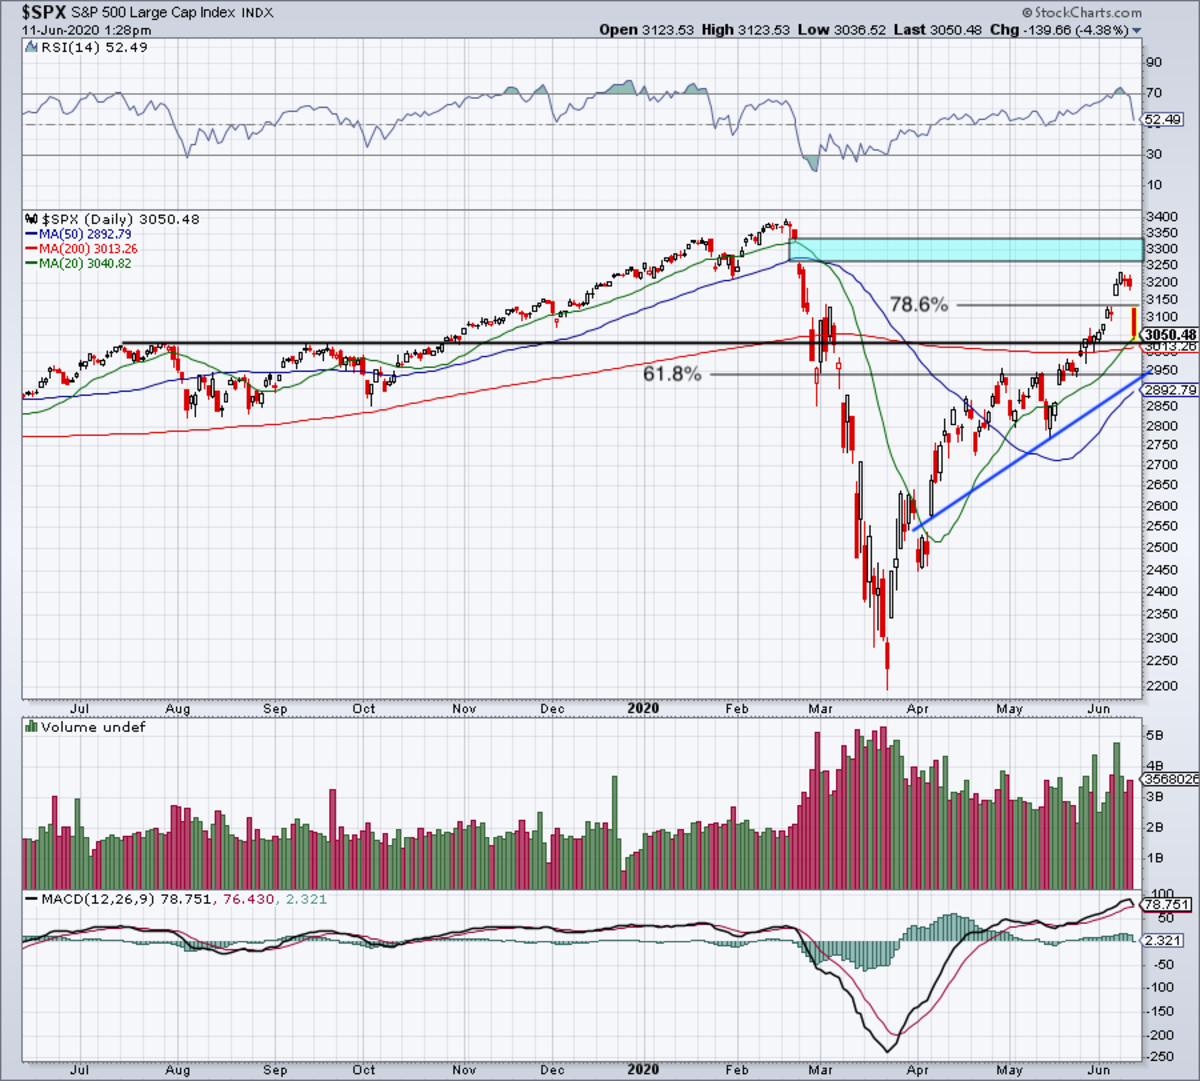 Daily chart of the S&P 500.